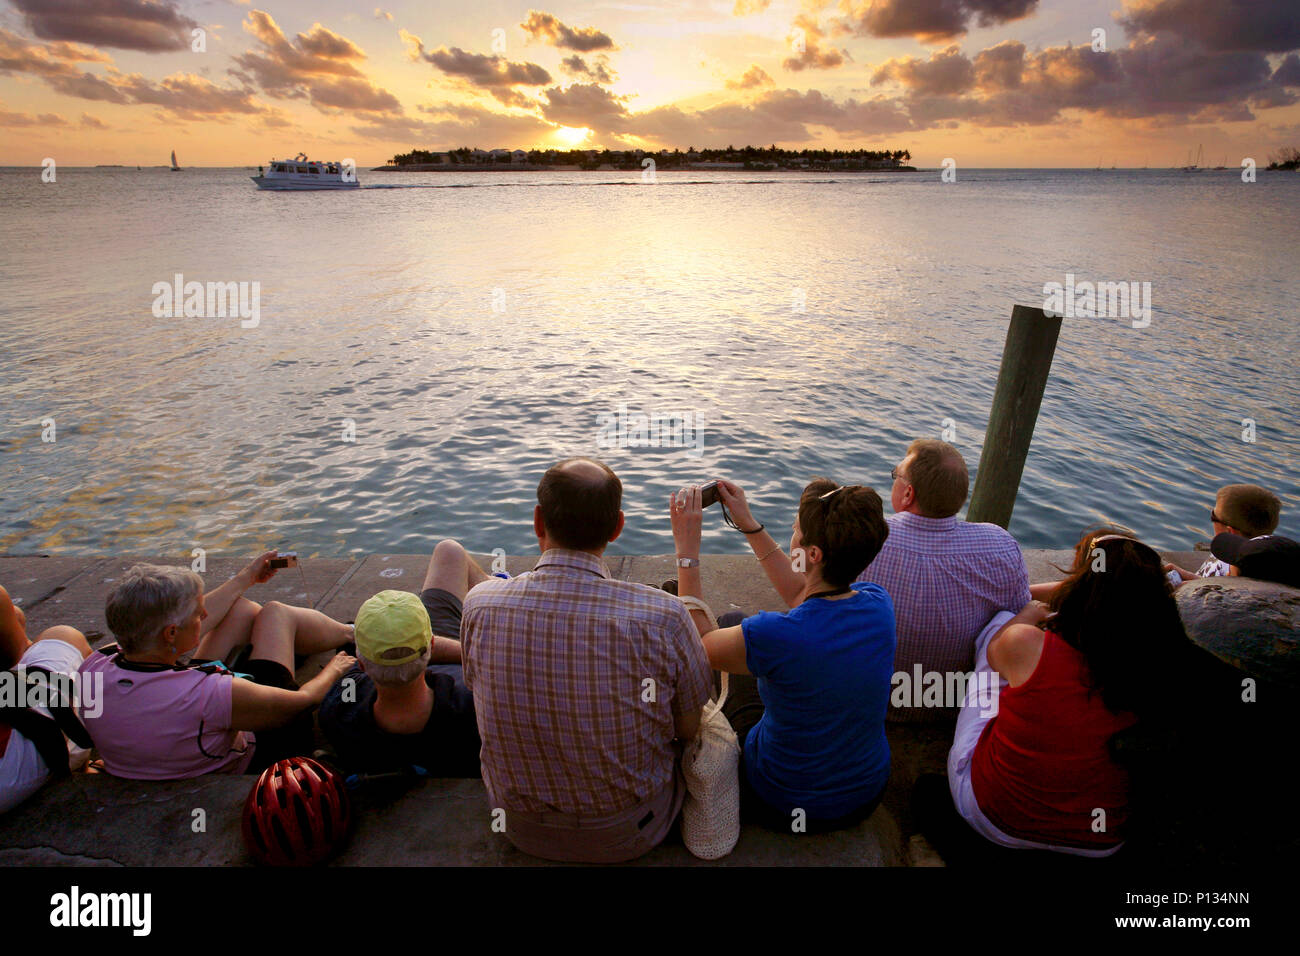 Watching the sun go down, Mallory Square, Key West, Florida, USA - Stock Image